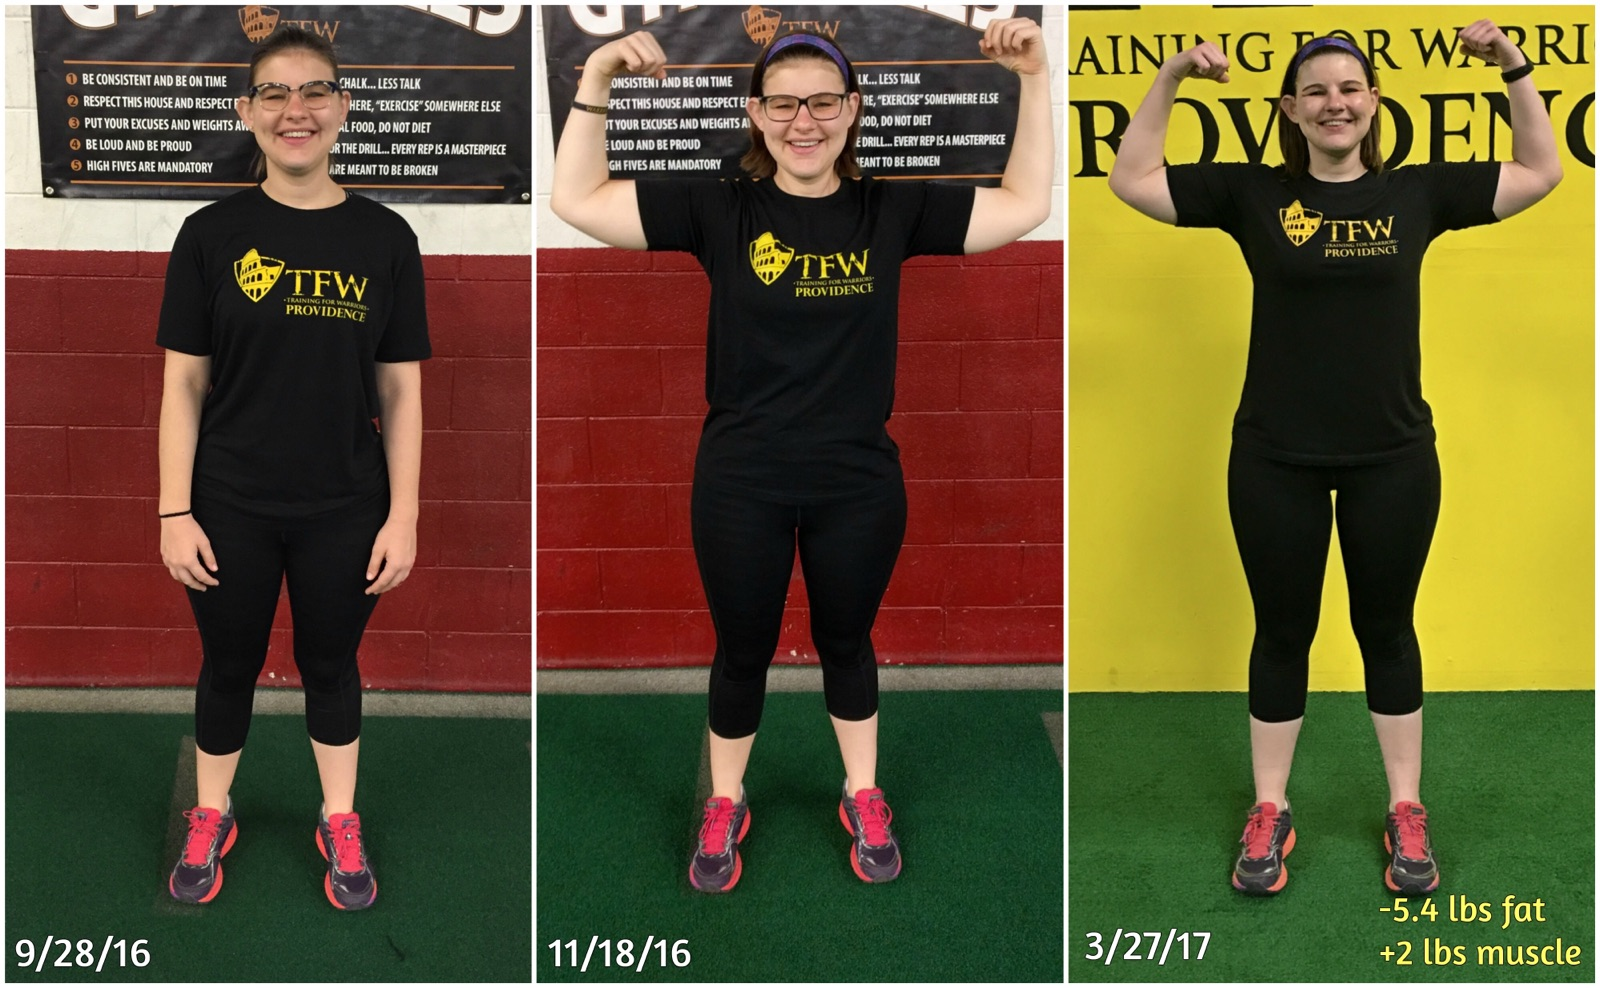 Since 3-27-17 down another -2.8 lbs. fat and up +1.7 lbs. of muscle.